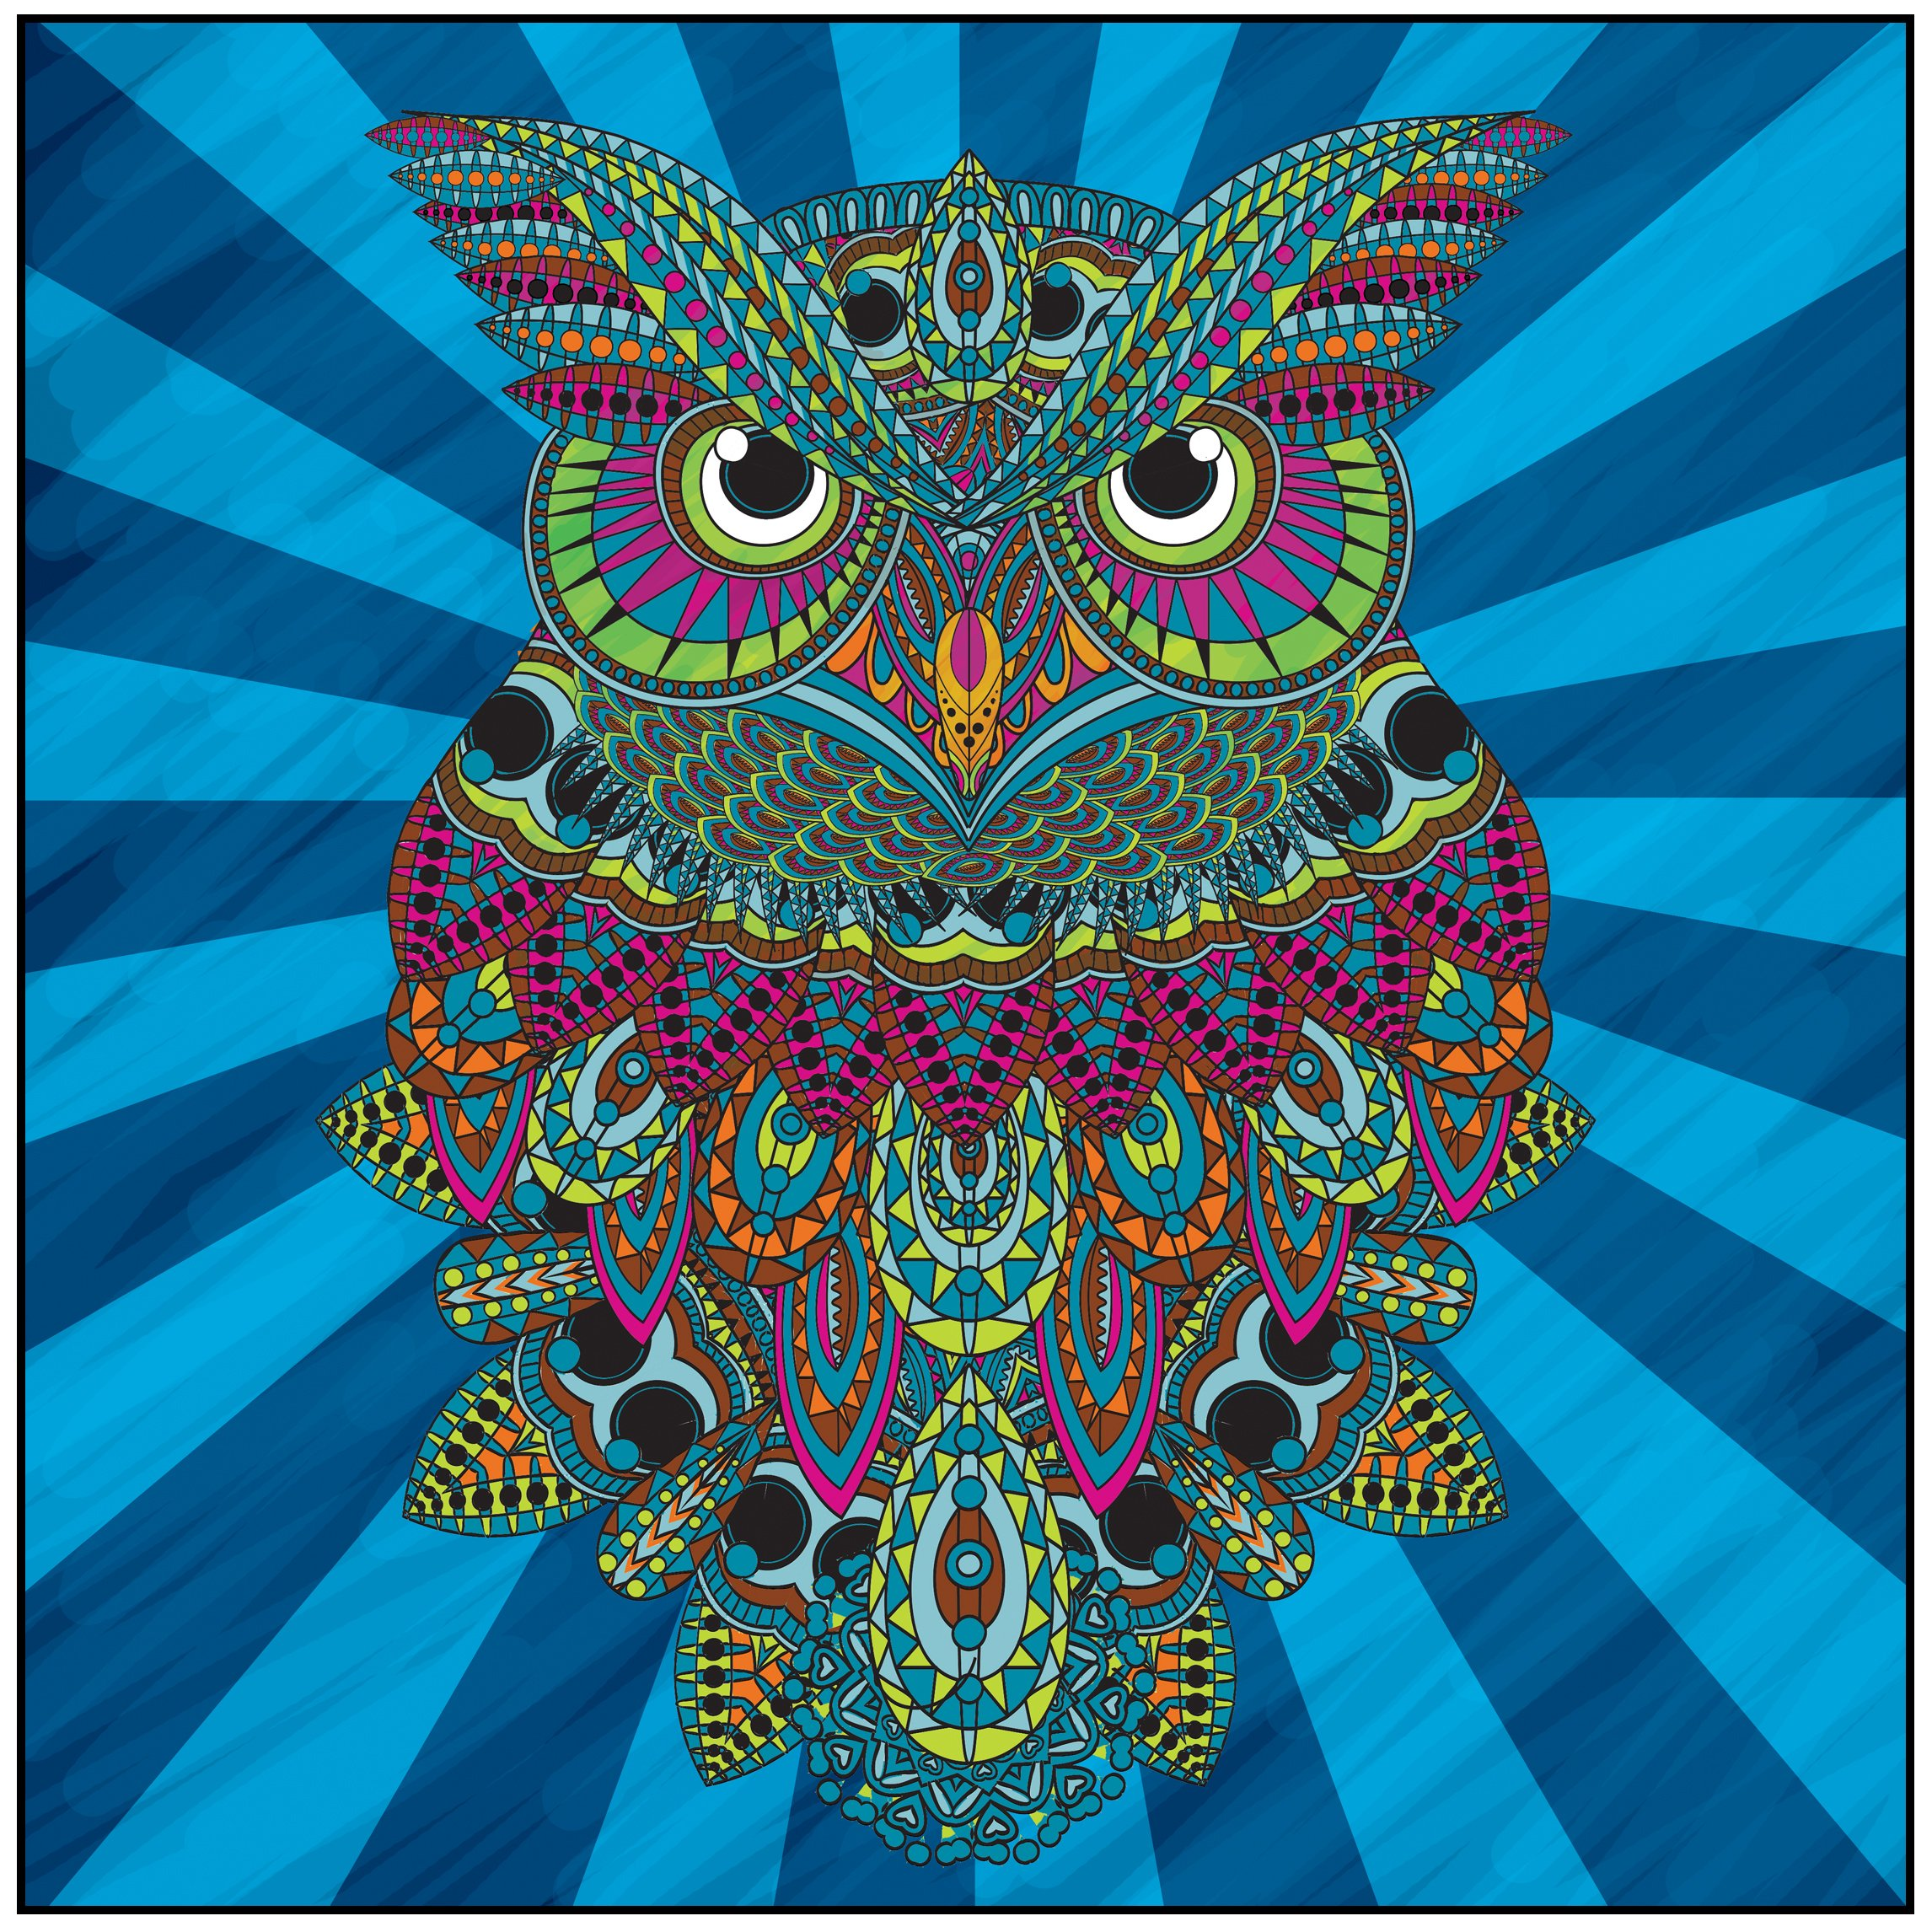 Stress relieving coloring - Amazon Com Owls Of The Night Adult Coloring Book With Bonus Relaxation Music Cd Included Color With Music 9781988137179 Newbourne Media Books